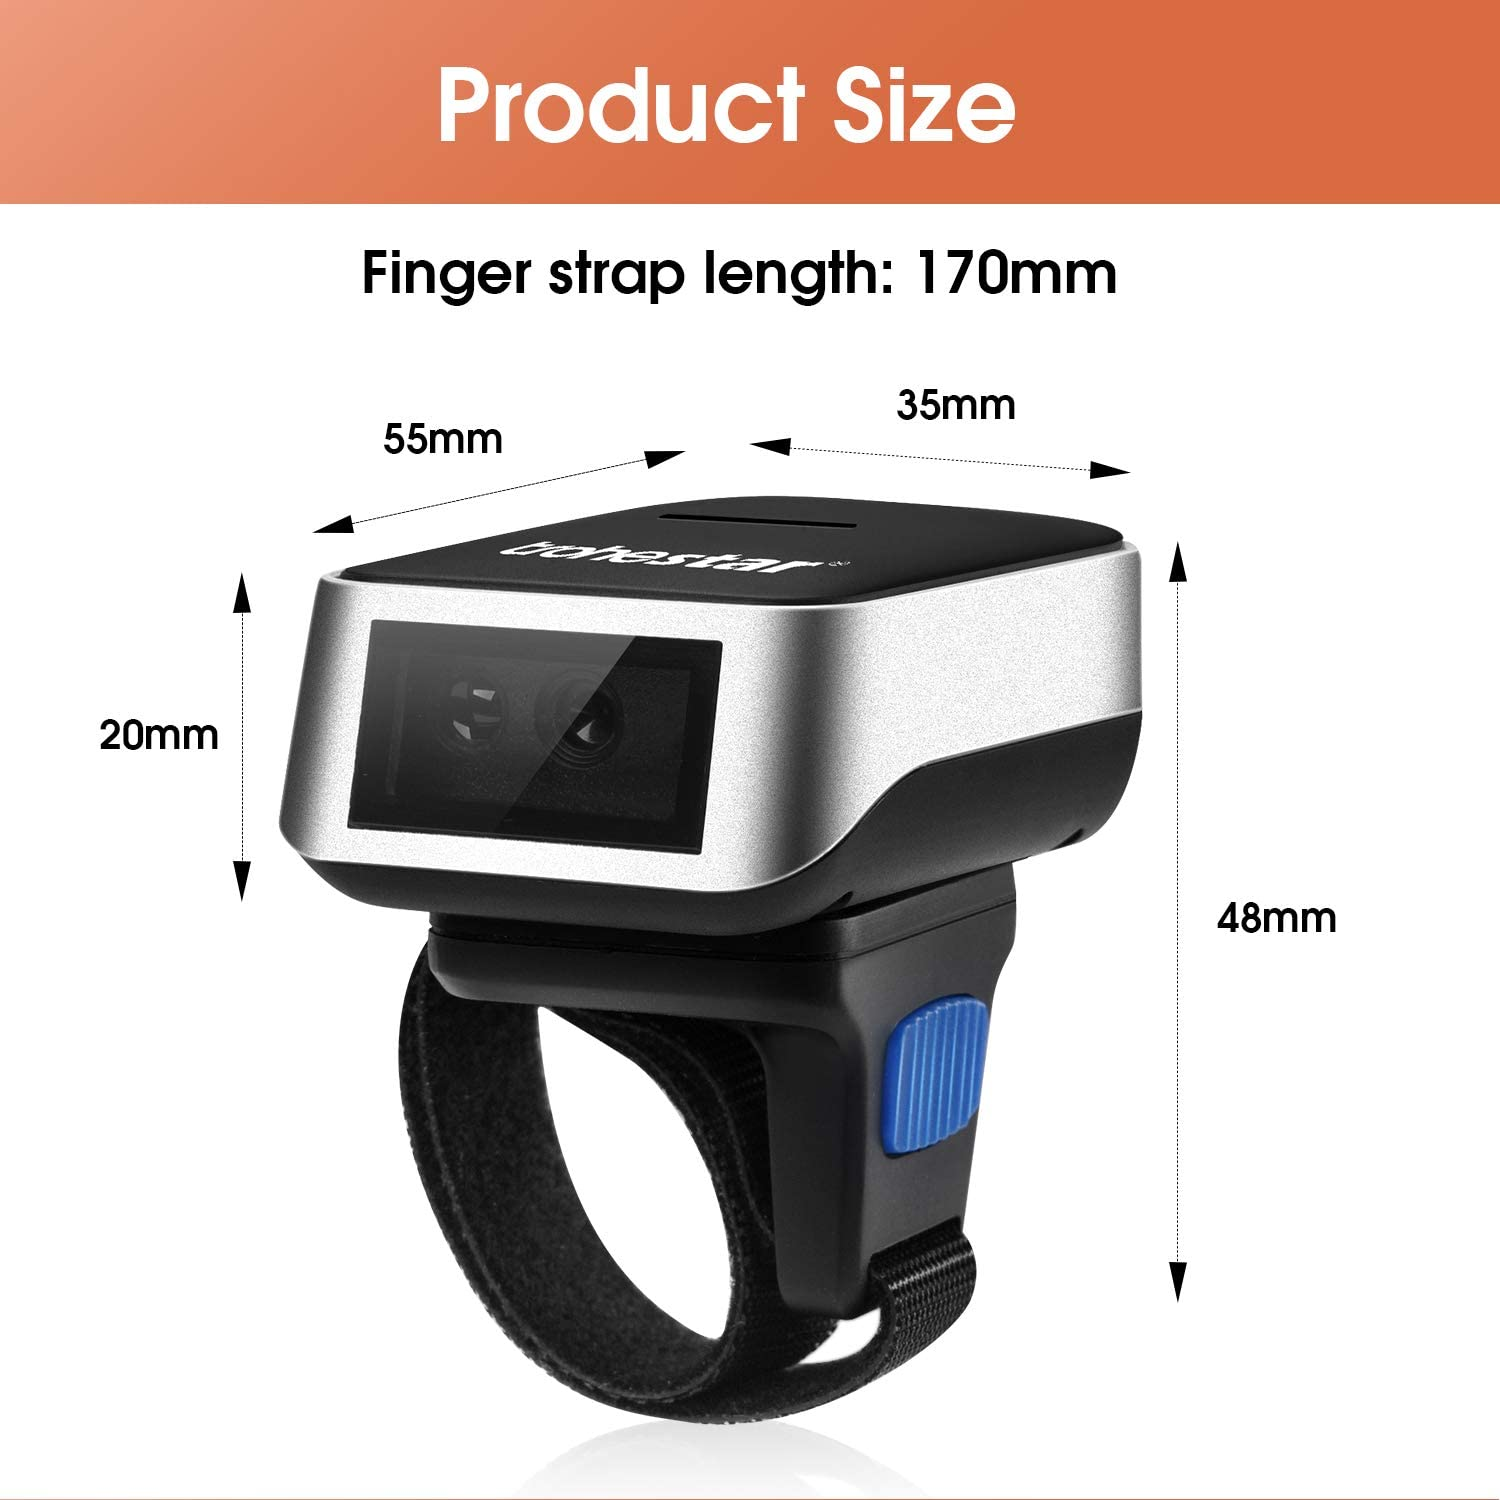 Trohestar Bluetooth Barcode Scanner,Wearable Mini CCD Wireless Ring Barcode Scanner Portable 1D Bar Code Reader Inventory Scanner Work with Windows iOS Android Linux Mac OS